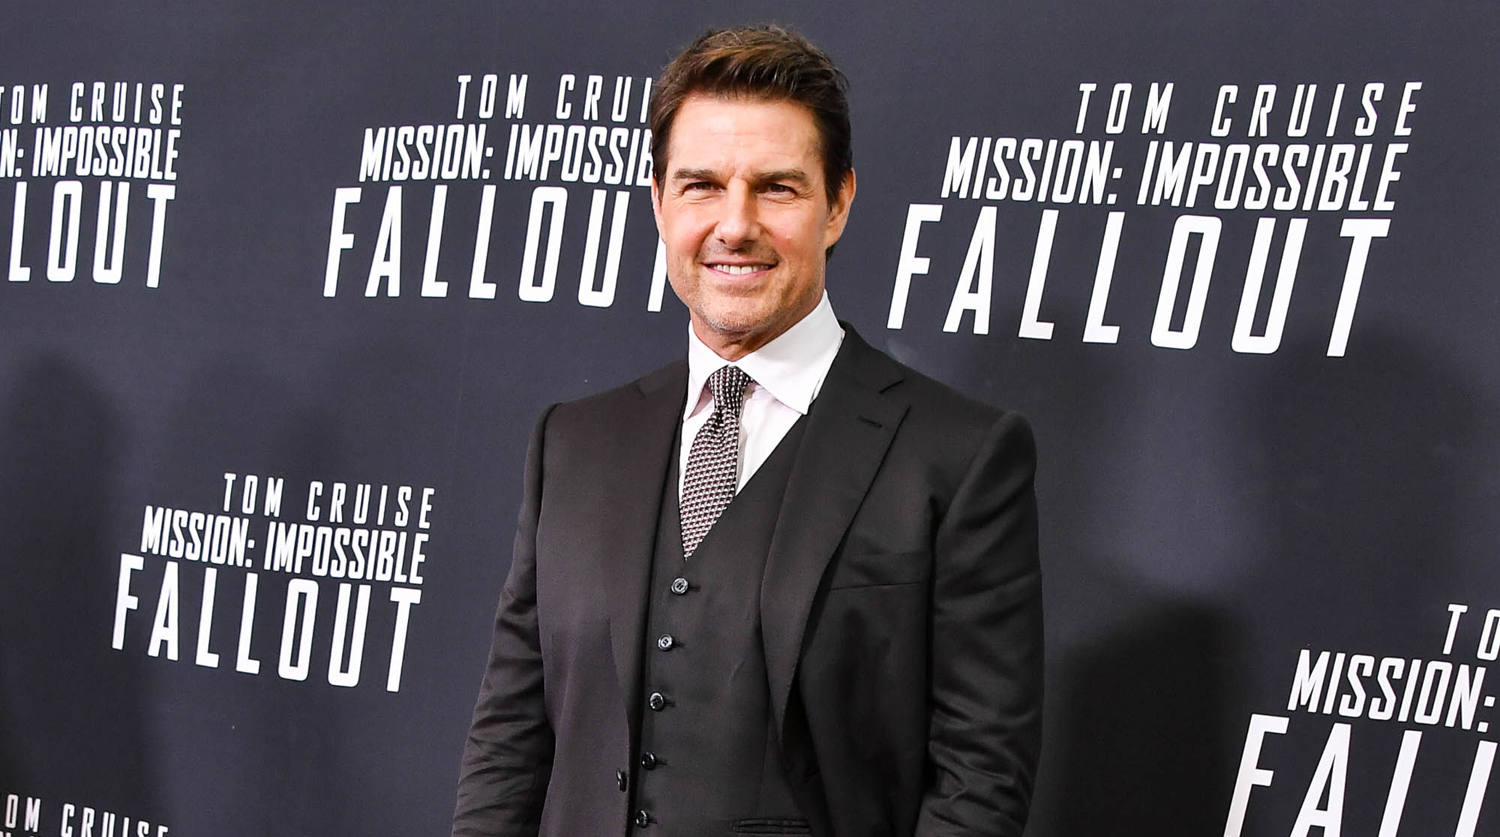 Tom Cruise Announces Upcoming 'Mission: Impossible' Movies ...